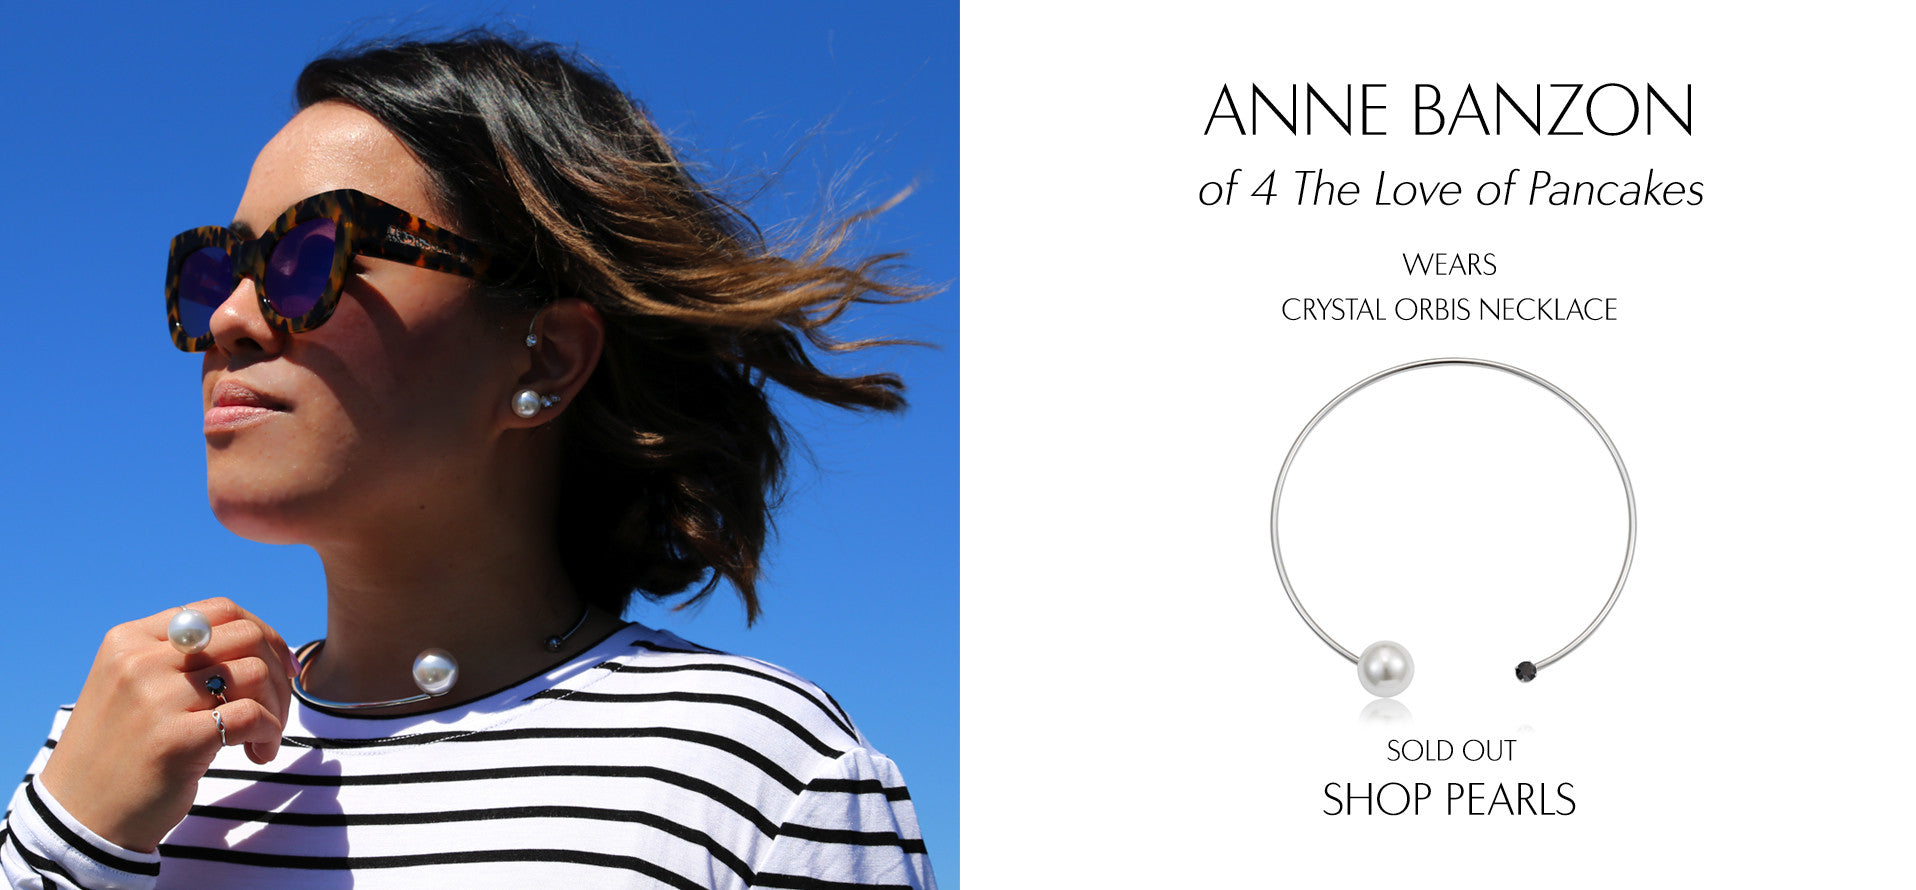 4TheLoveOfPancakes - Fashion Blog by Anne Banzon wears Sarina Suriano Crystal Orbis pearl necklace